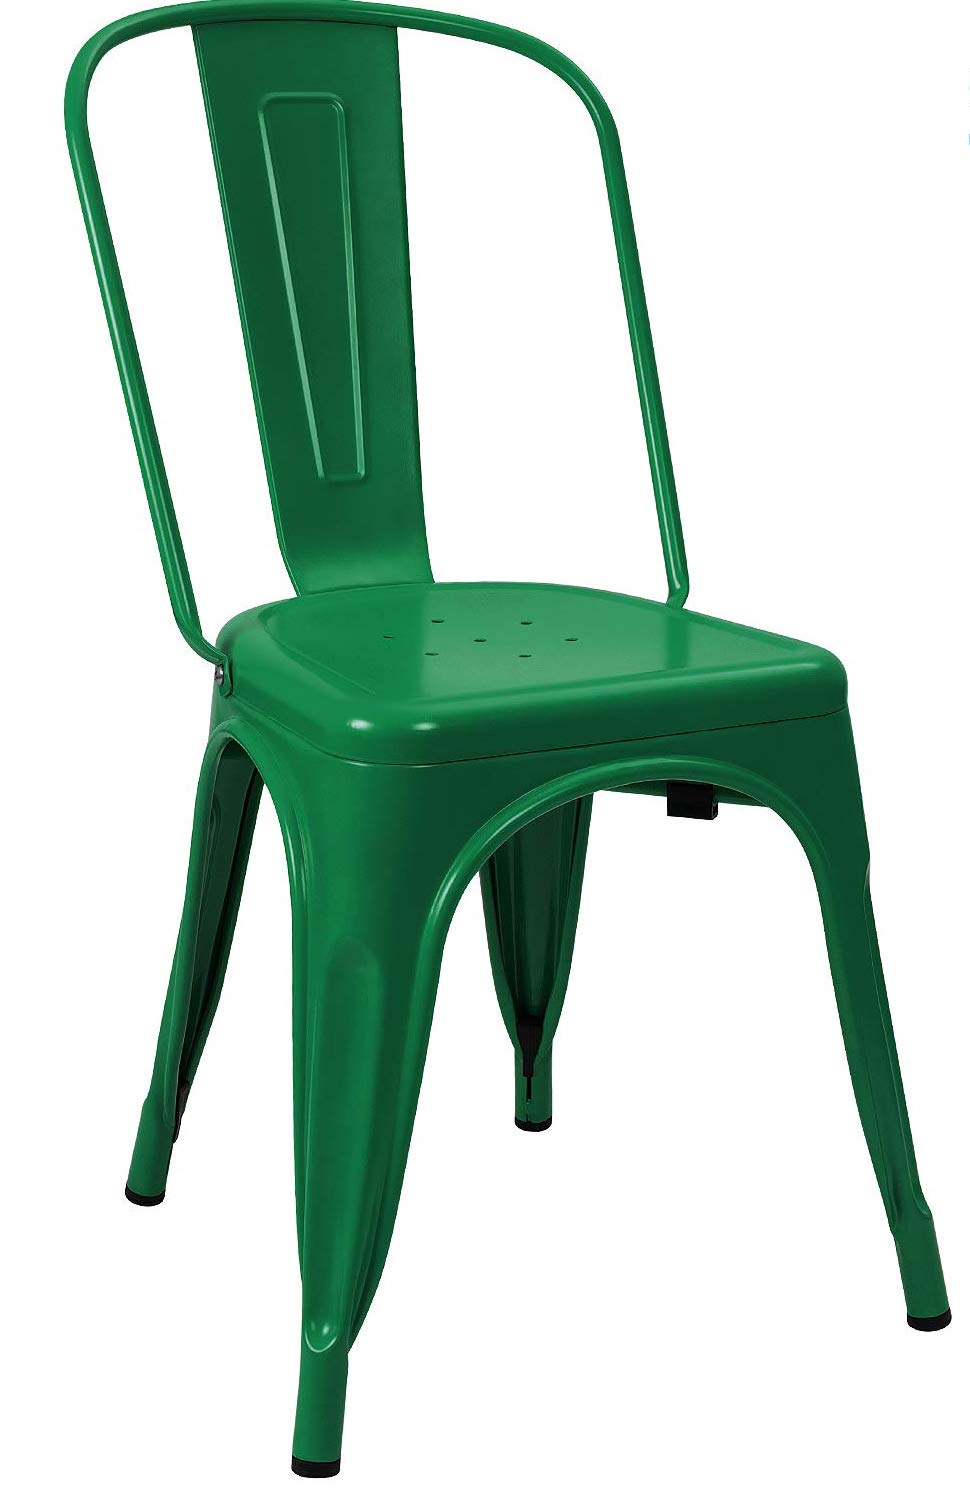 Metal Chair - Green